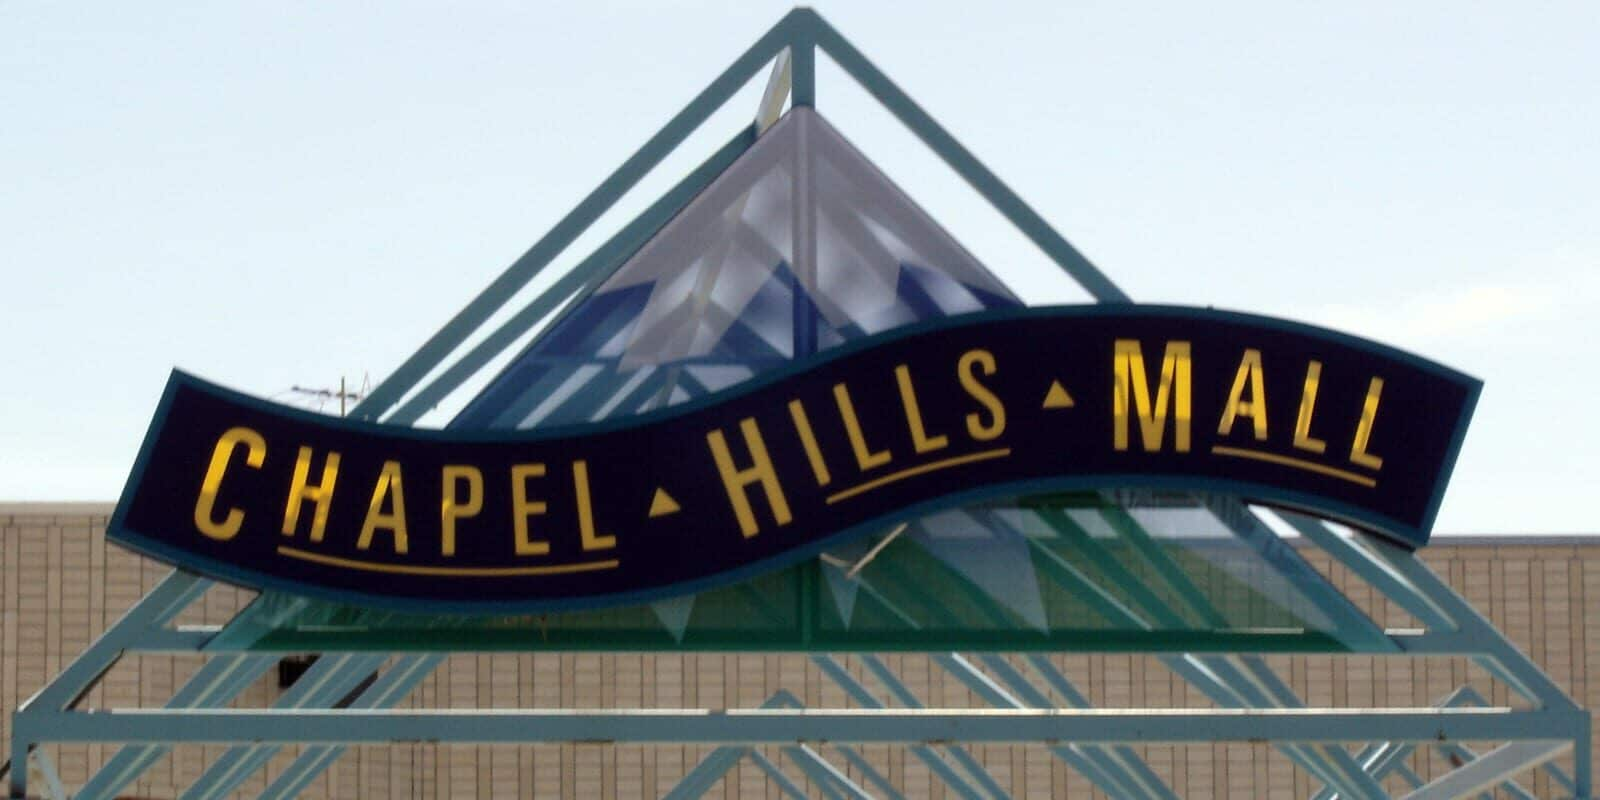 Chapel Hills Mall in Colorado Springs, CO